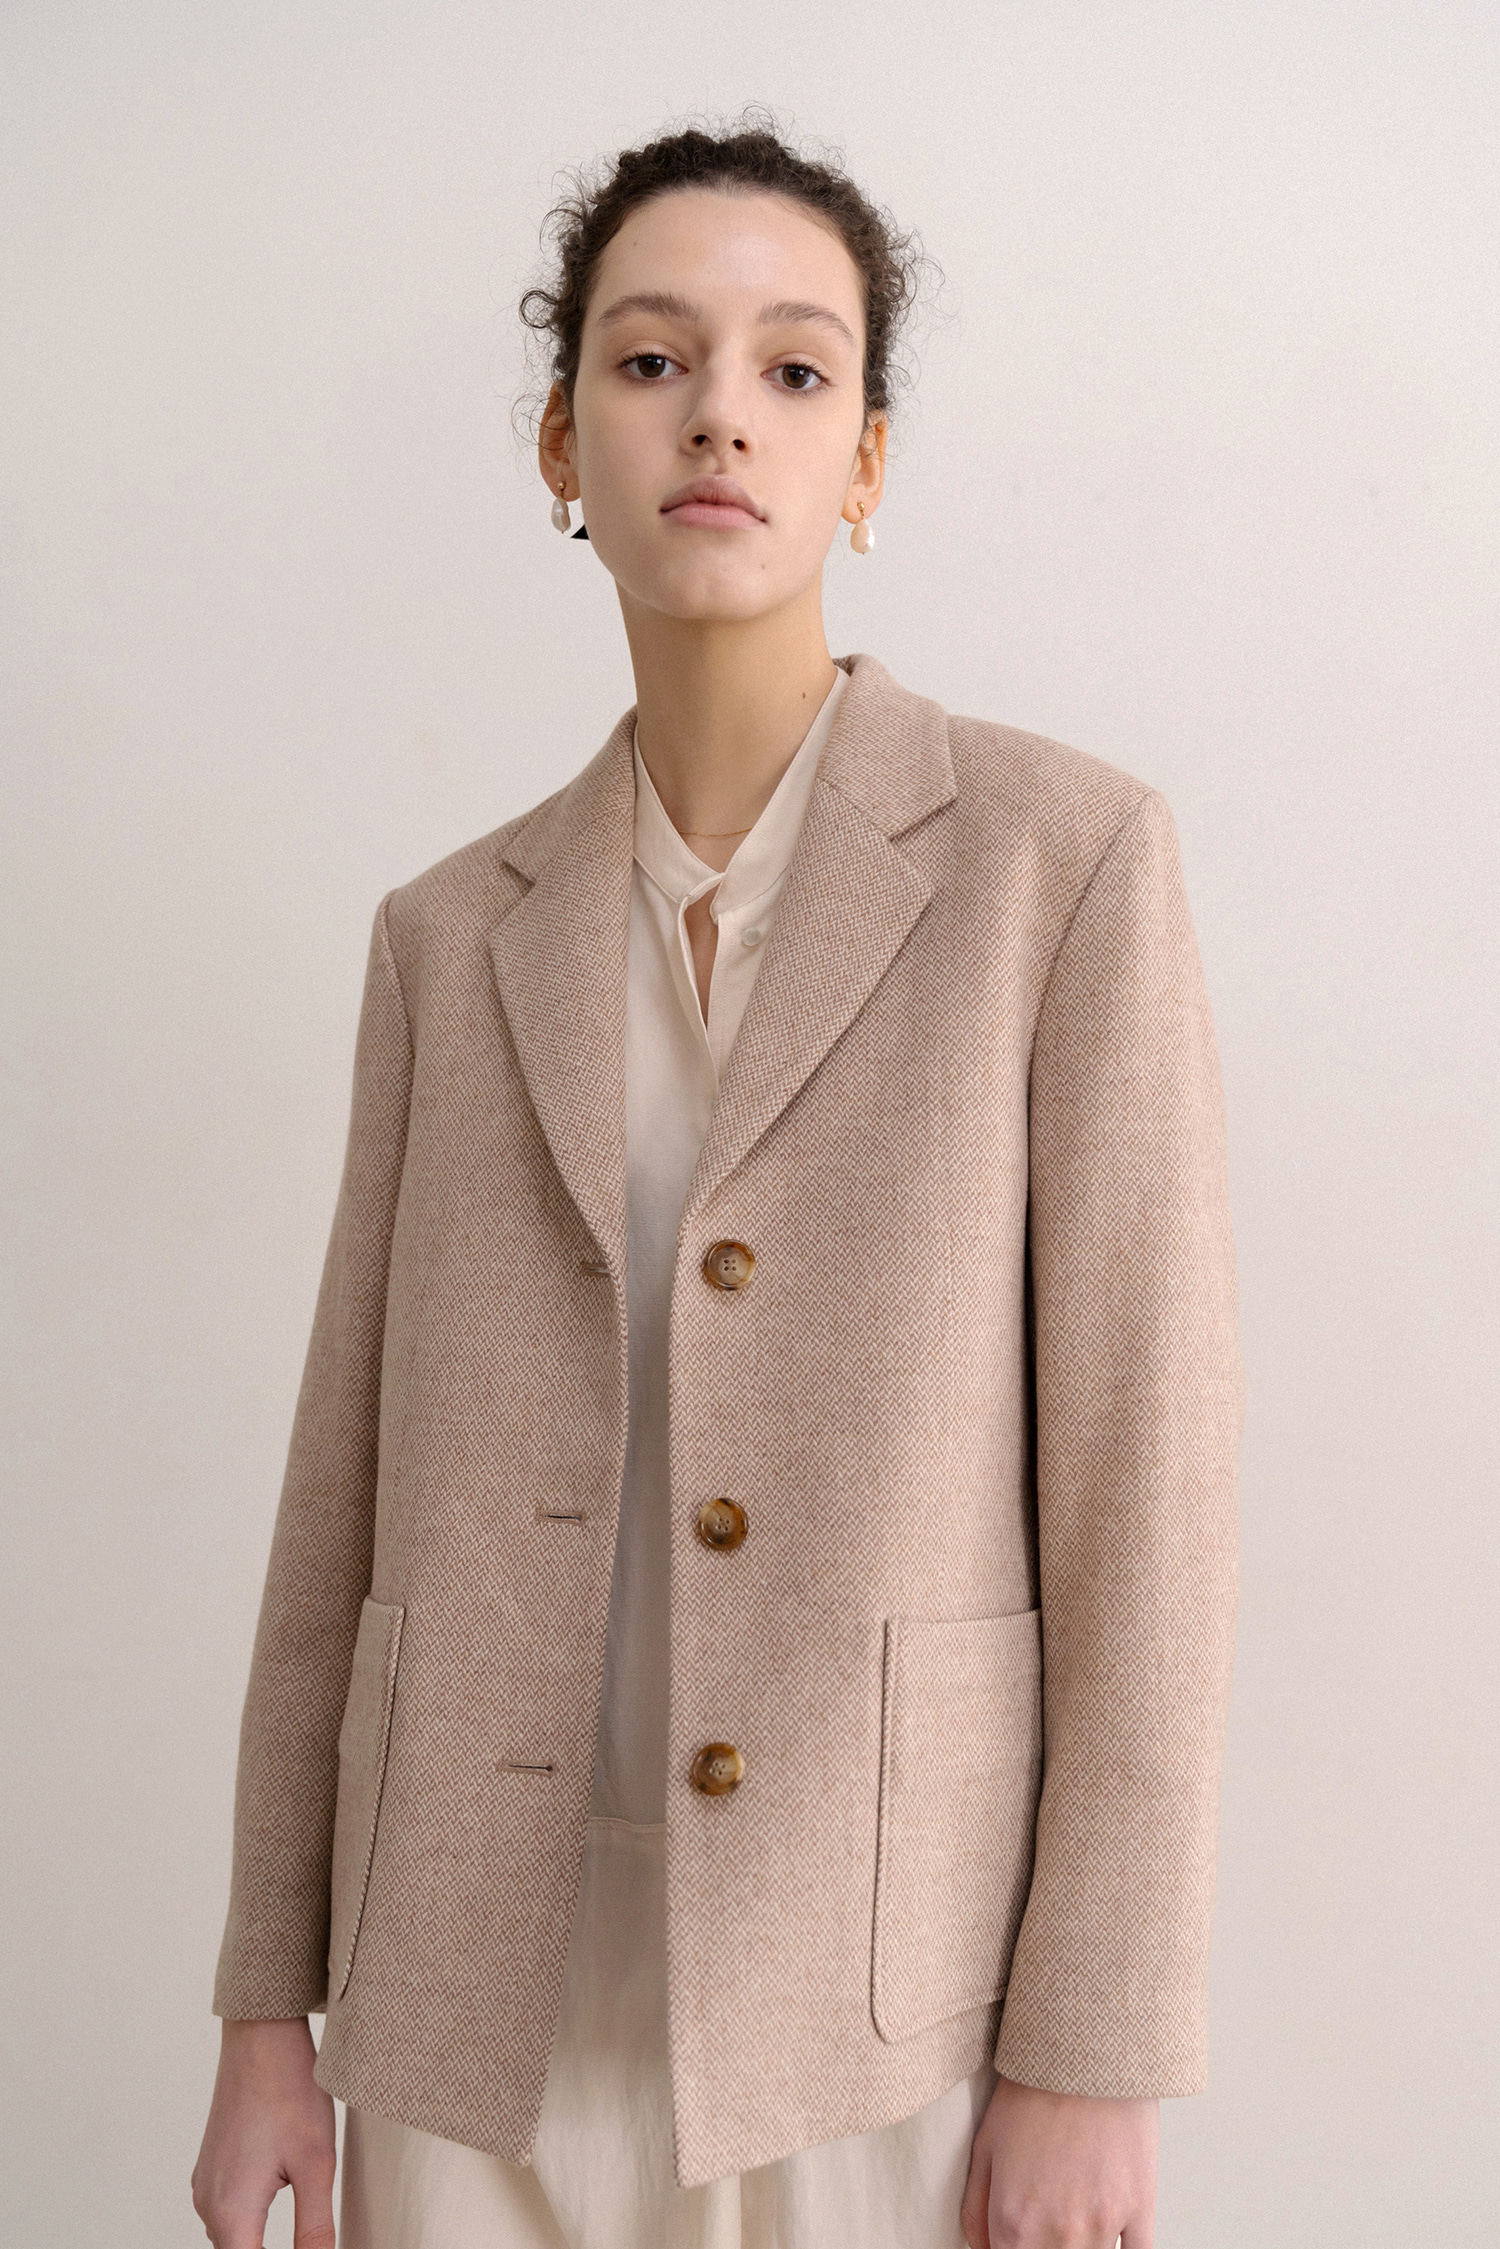 1980's Classic Jacket by abrahammoon (Loyal Beige pink)